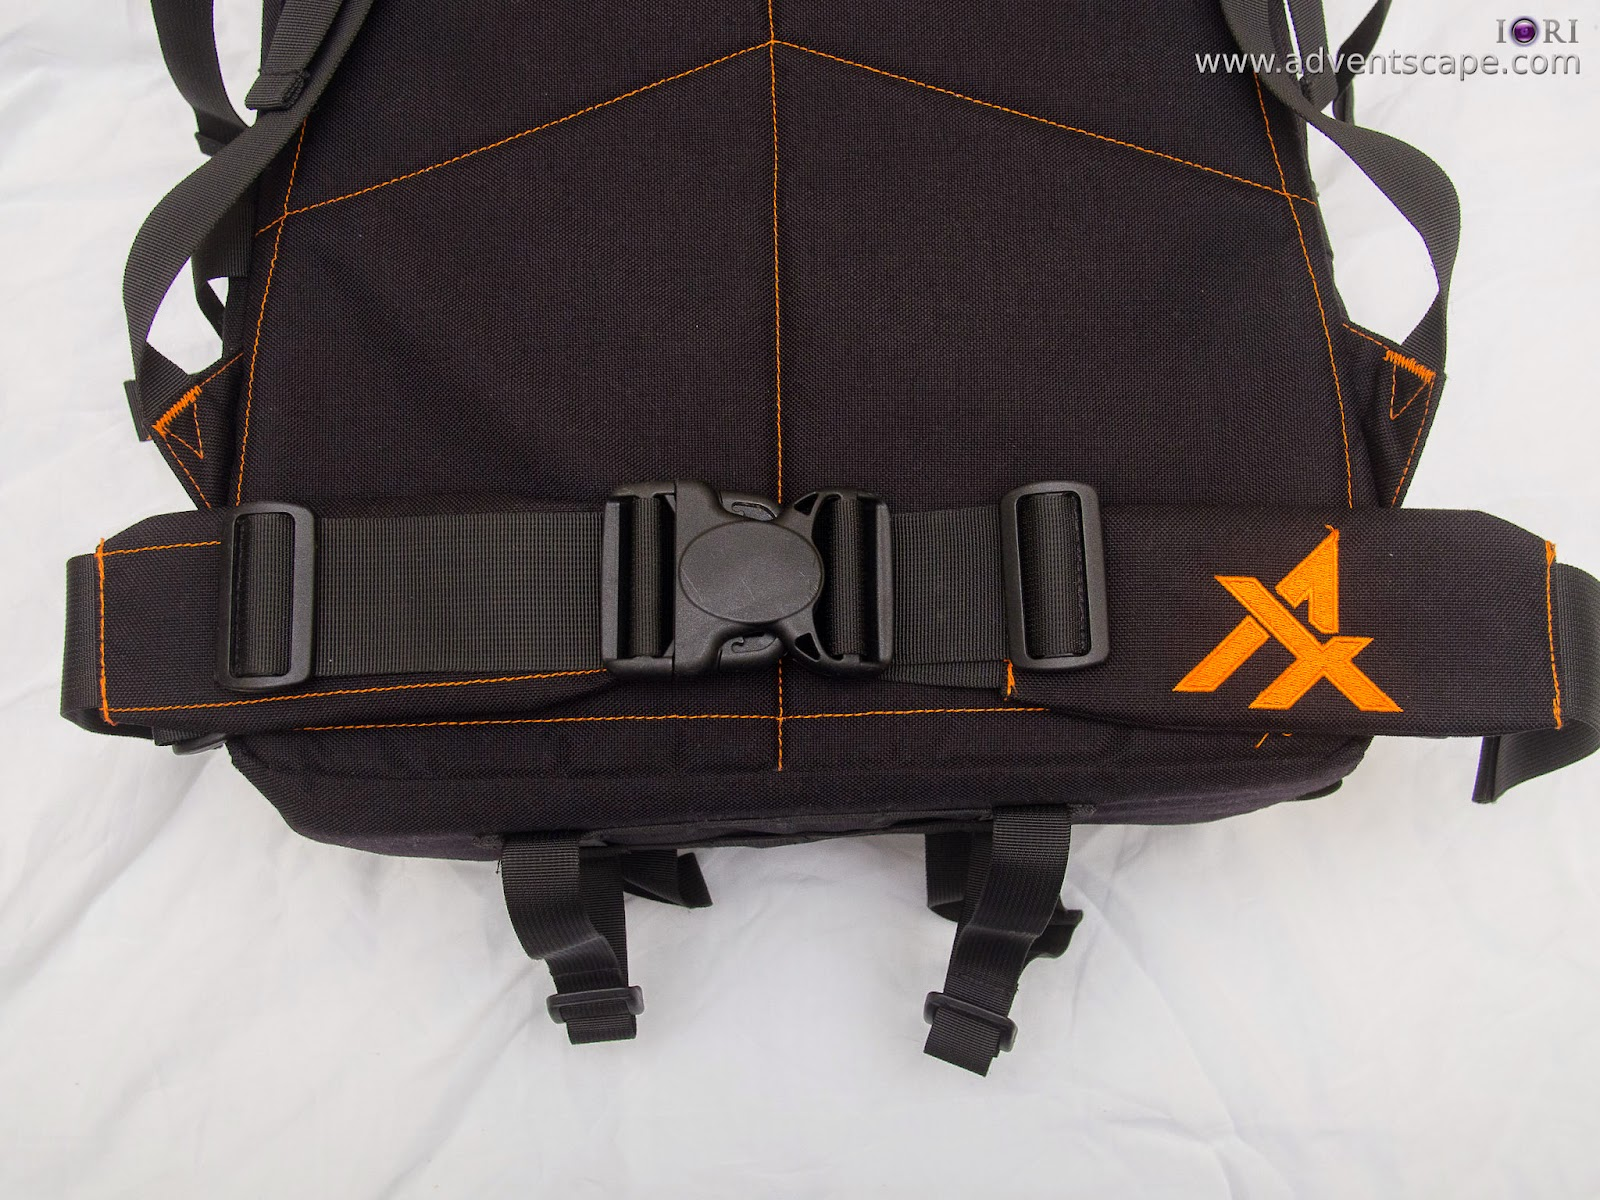 Philip Avellana, iori, adventscape, australia landscape photographer, backpack, bag, DJI, drone, Phantom, zenmuse, h3 3d, quadcopter, multi rotor, action xsories, compartment, foaming Inside Compartment of Action Xsories, hip belt